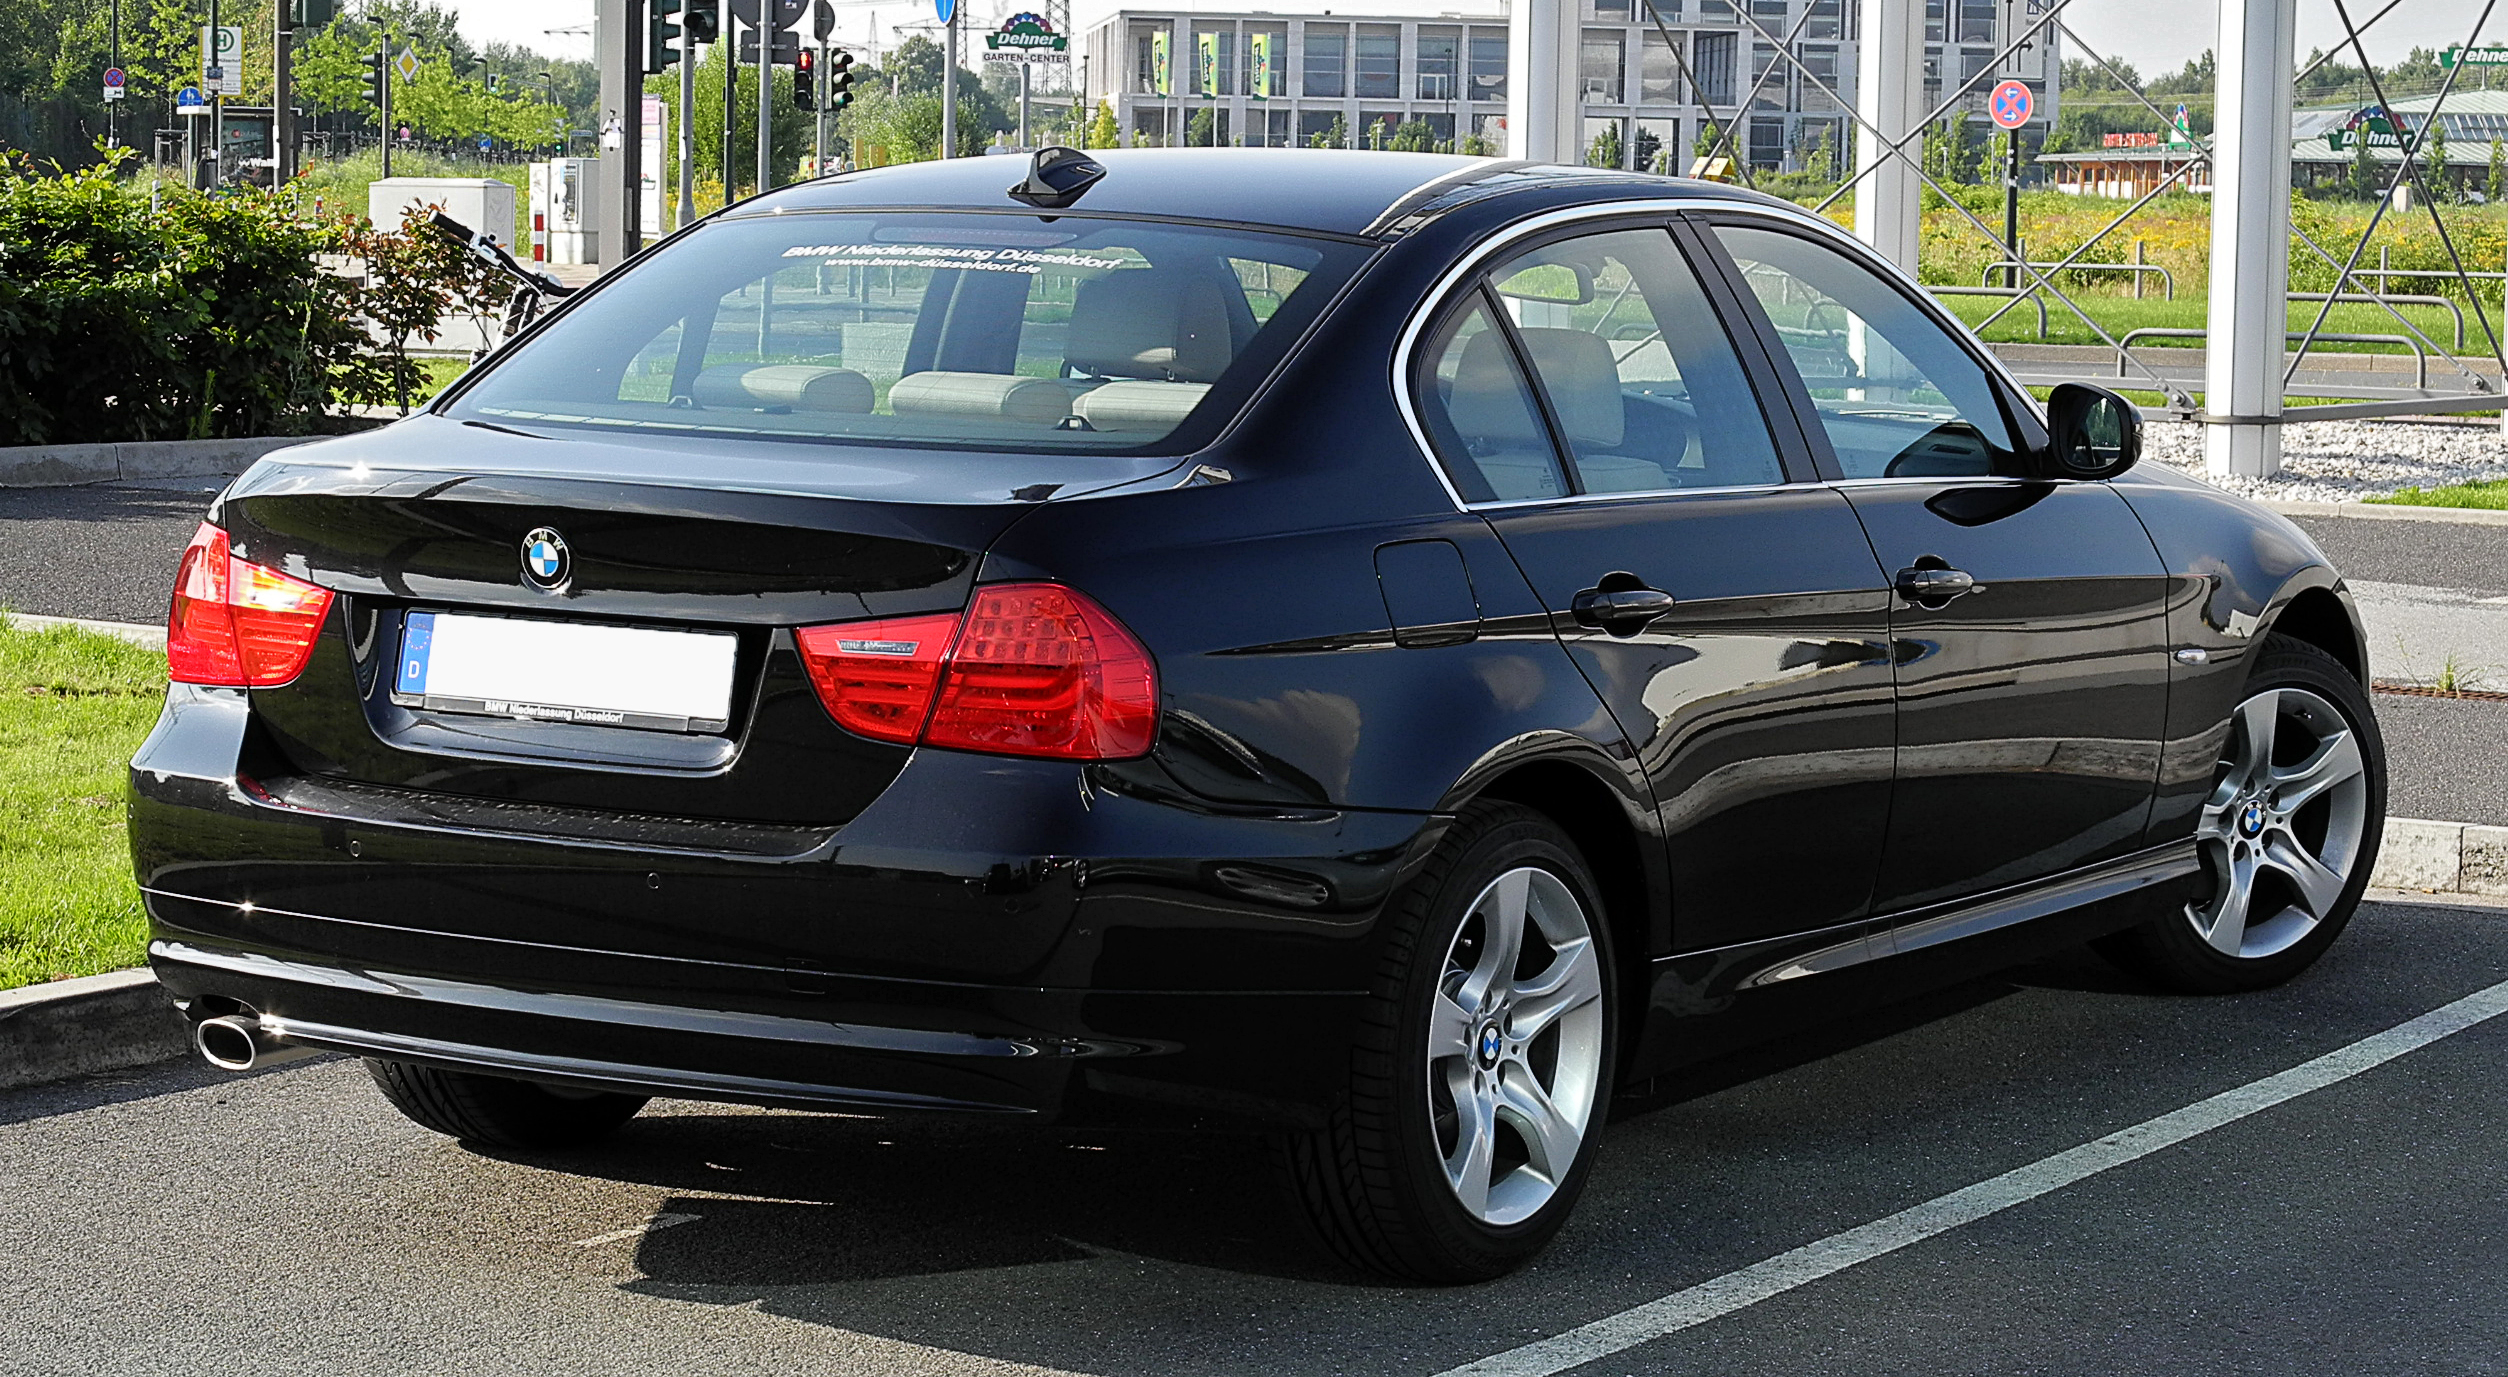 file bmw 3er e90 facelift heckansicht 26 juni 2011 d wikimedia commons. Black Bedroom Furniture Sets. Home Design Ideas